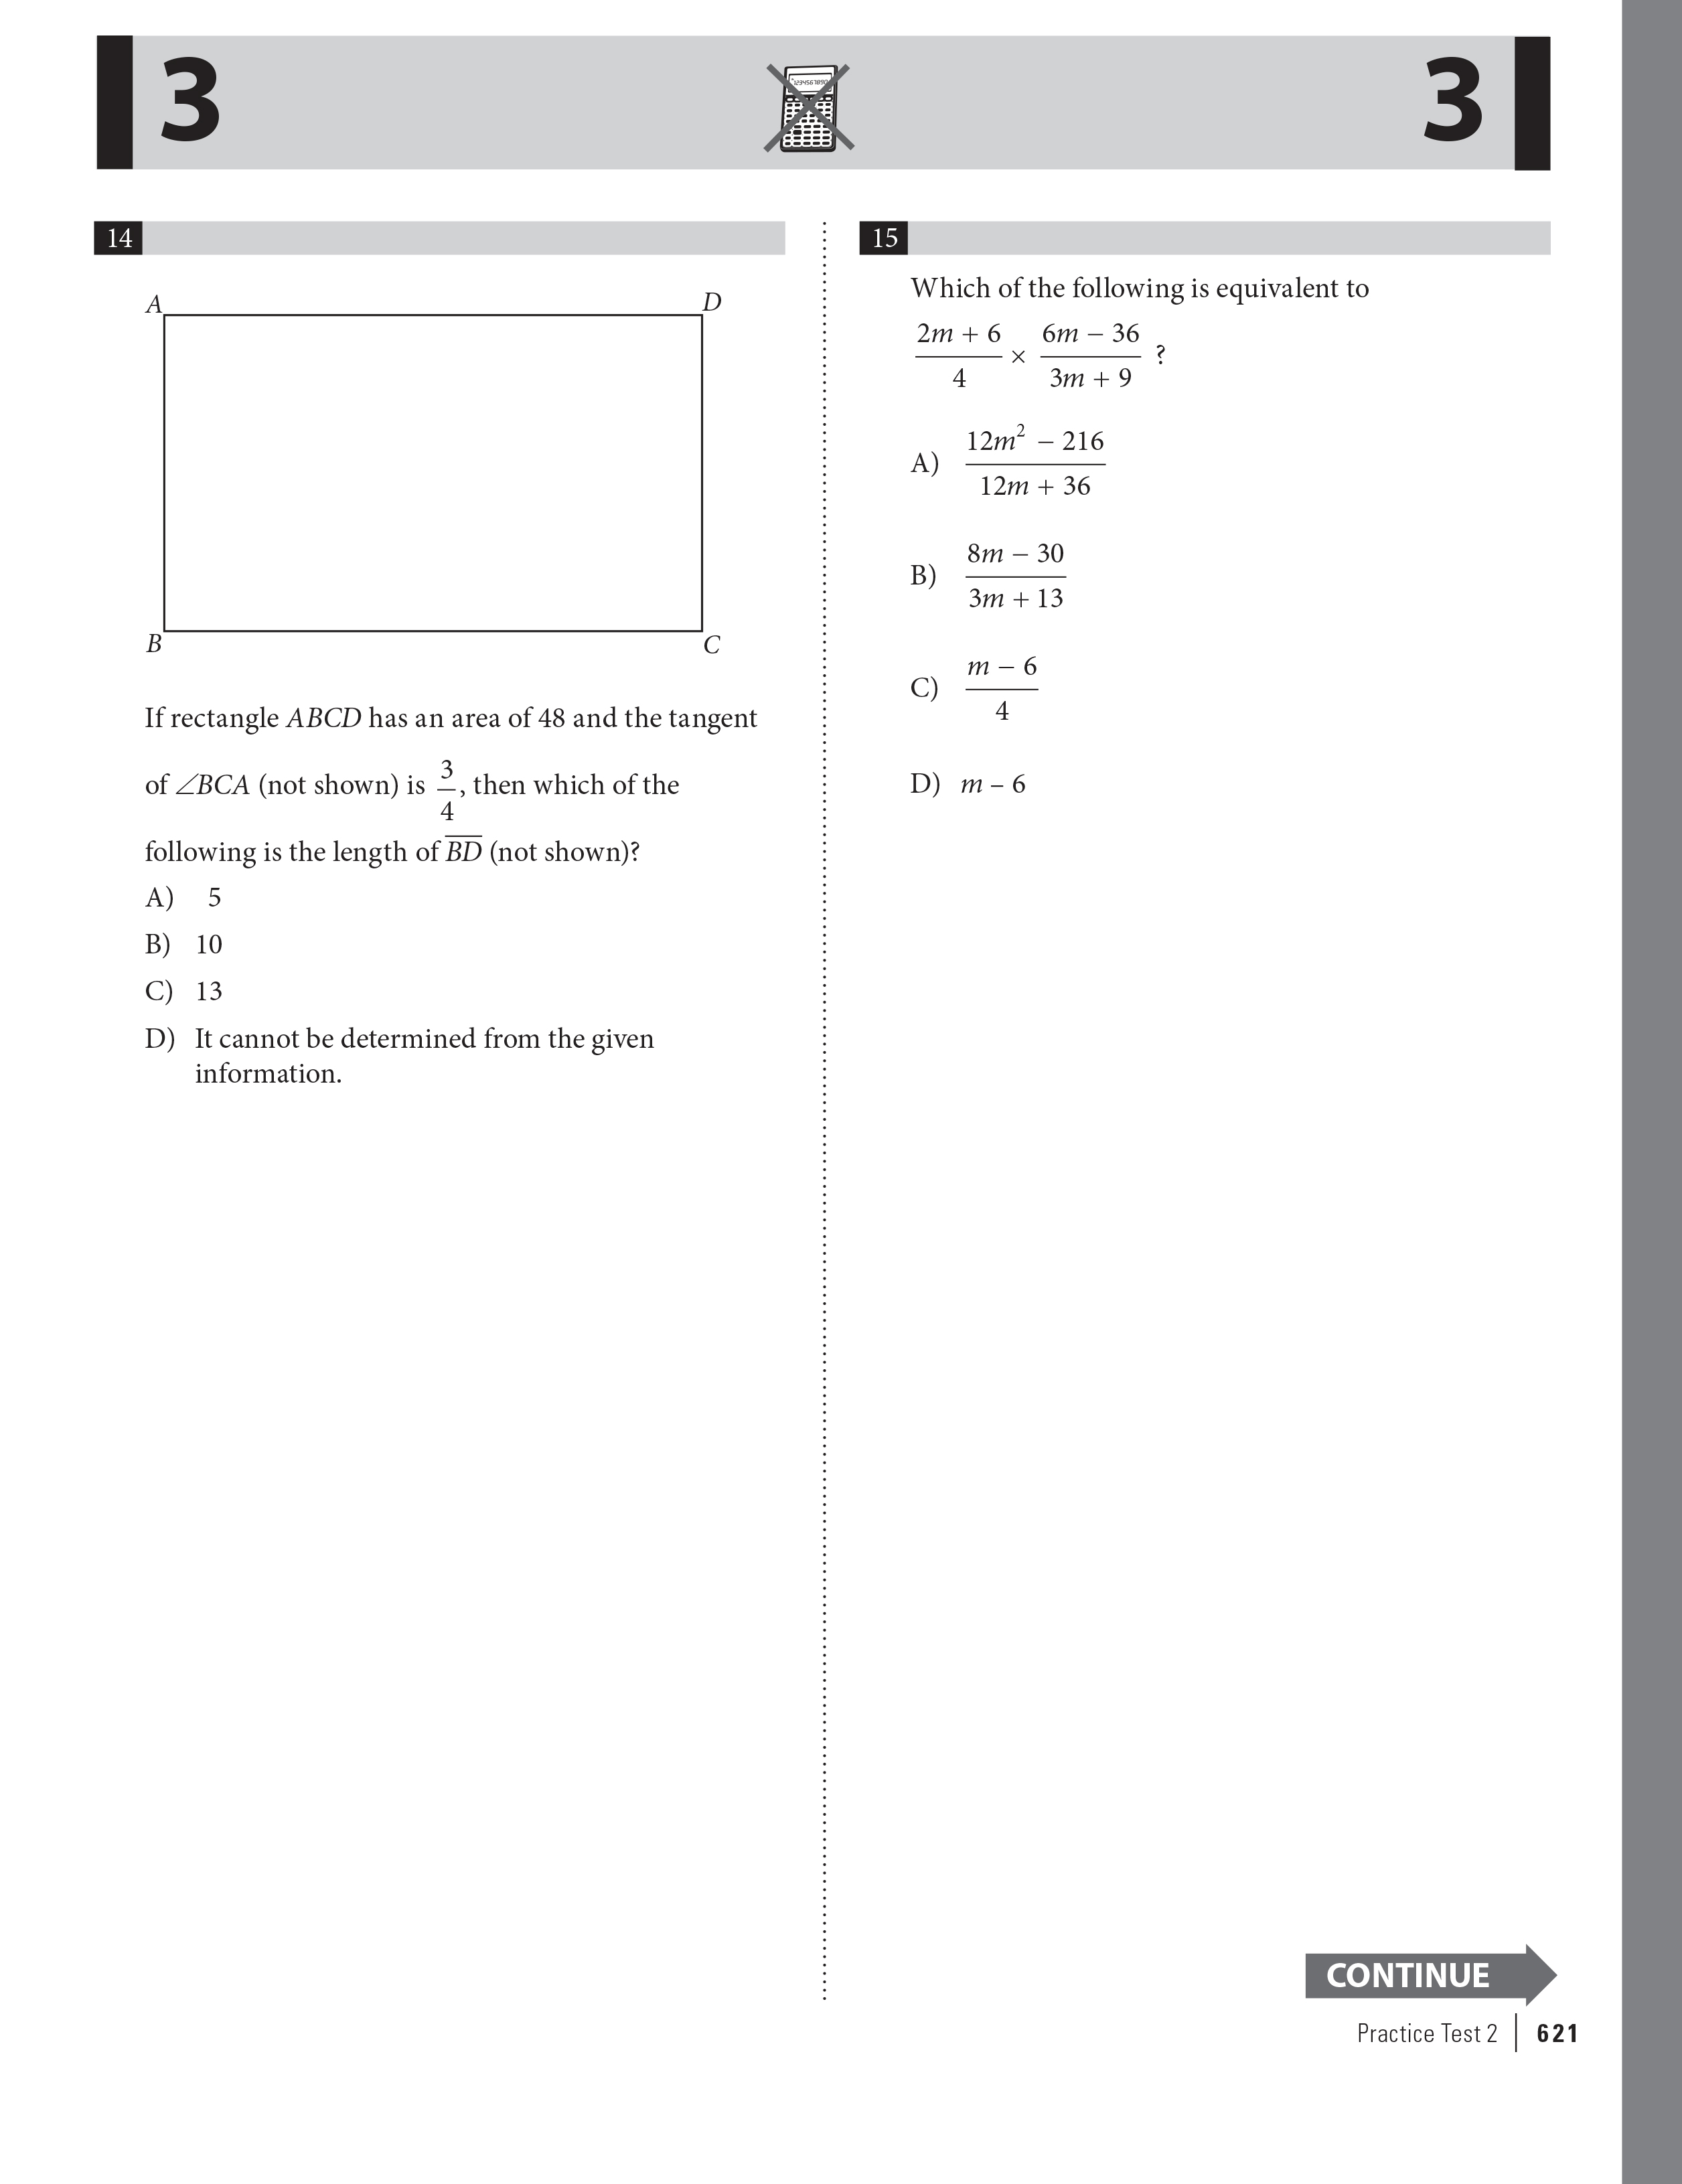 Extended ebook content for Cracking the SAT Premium 2018